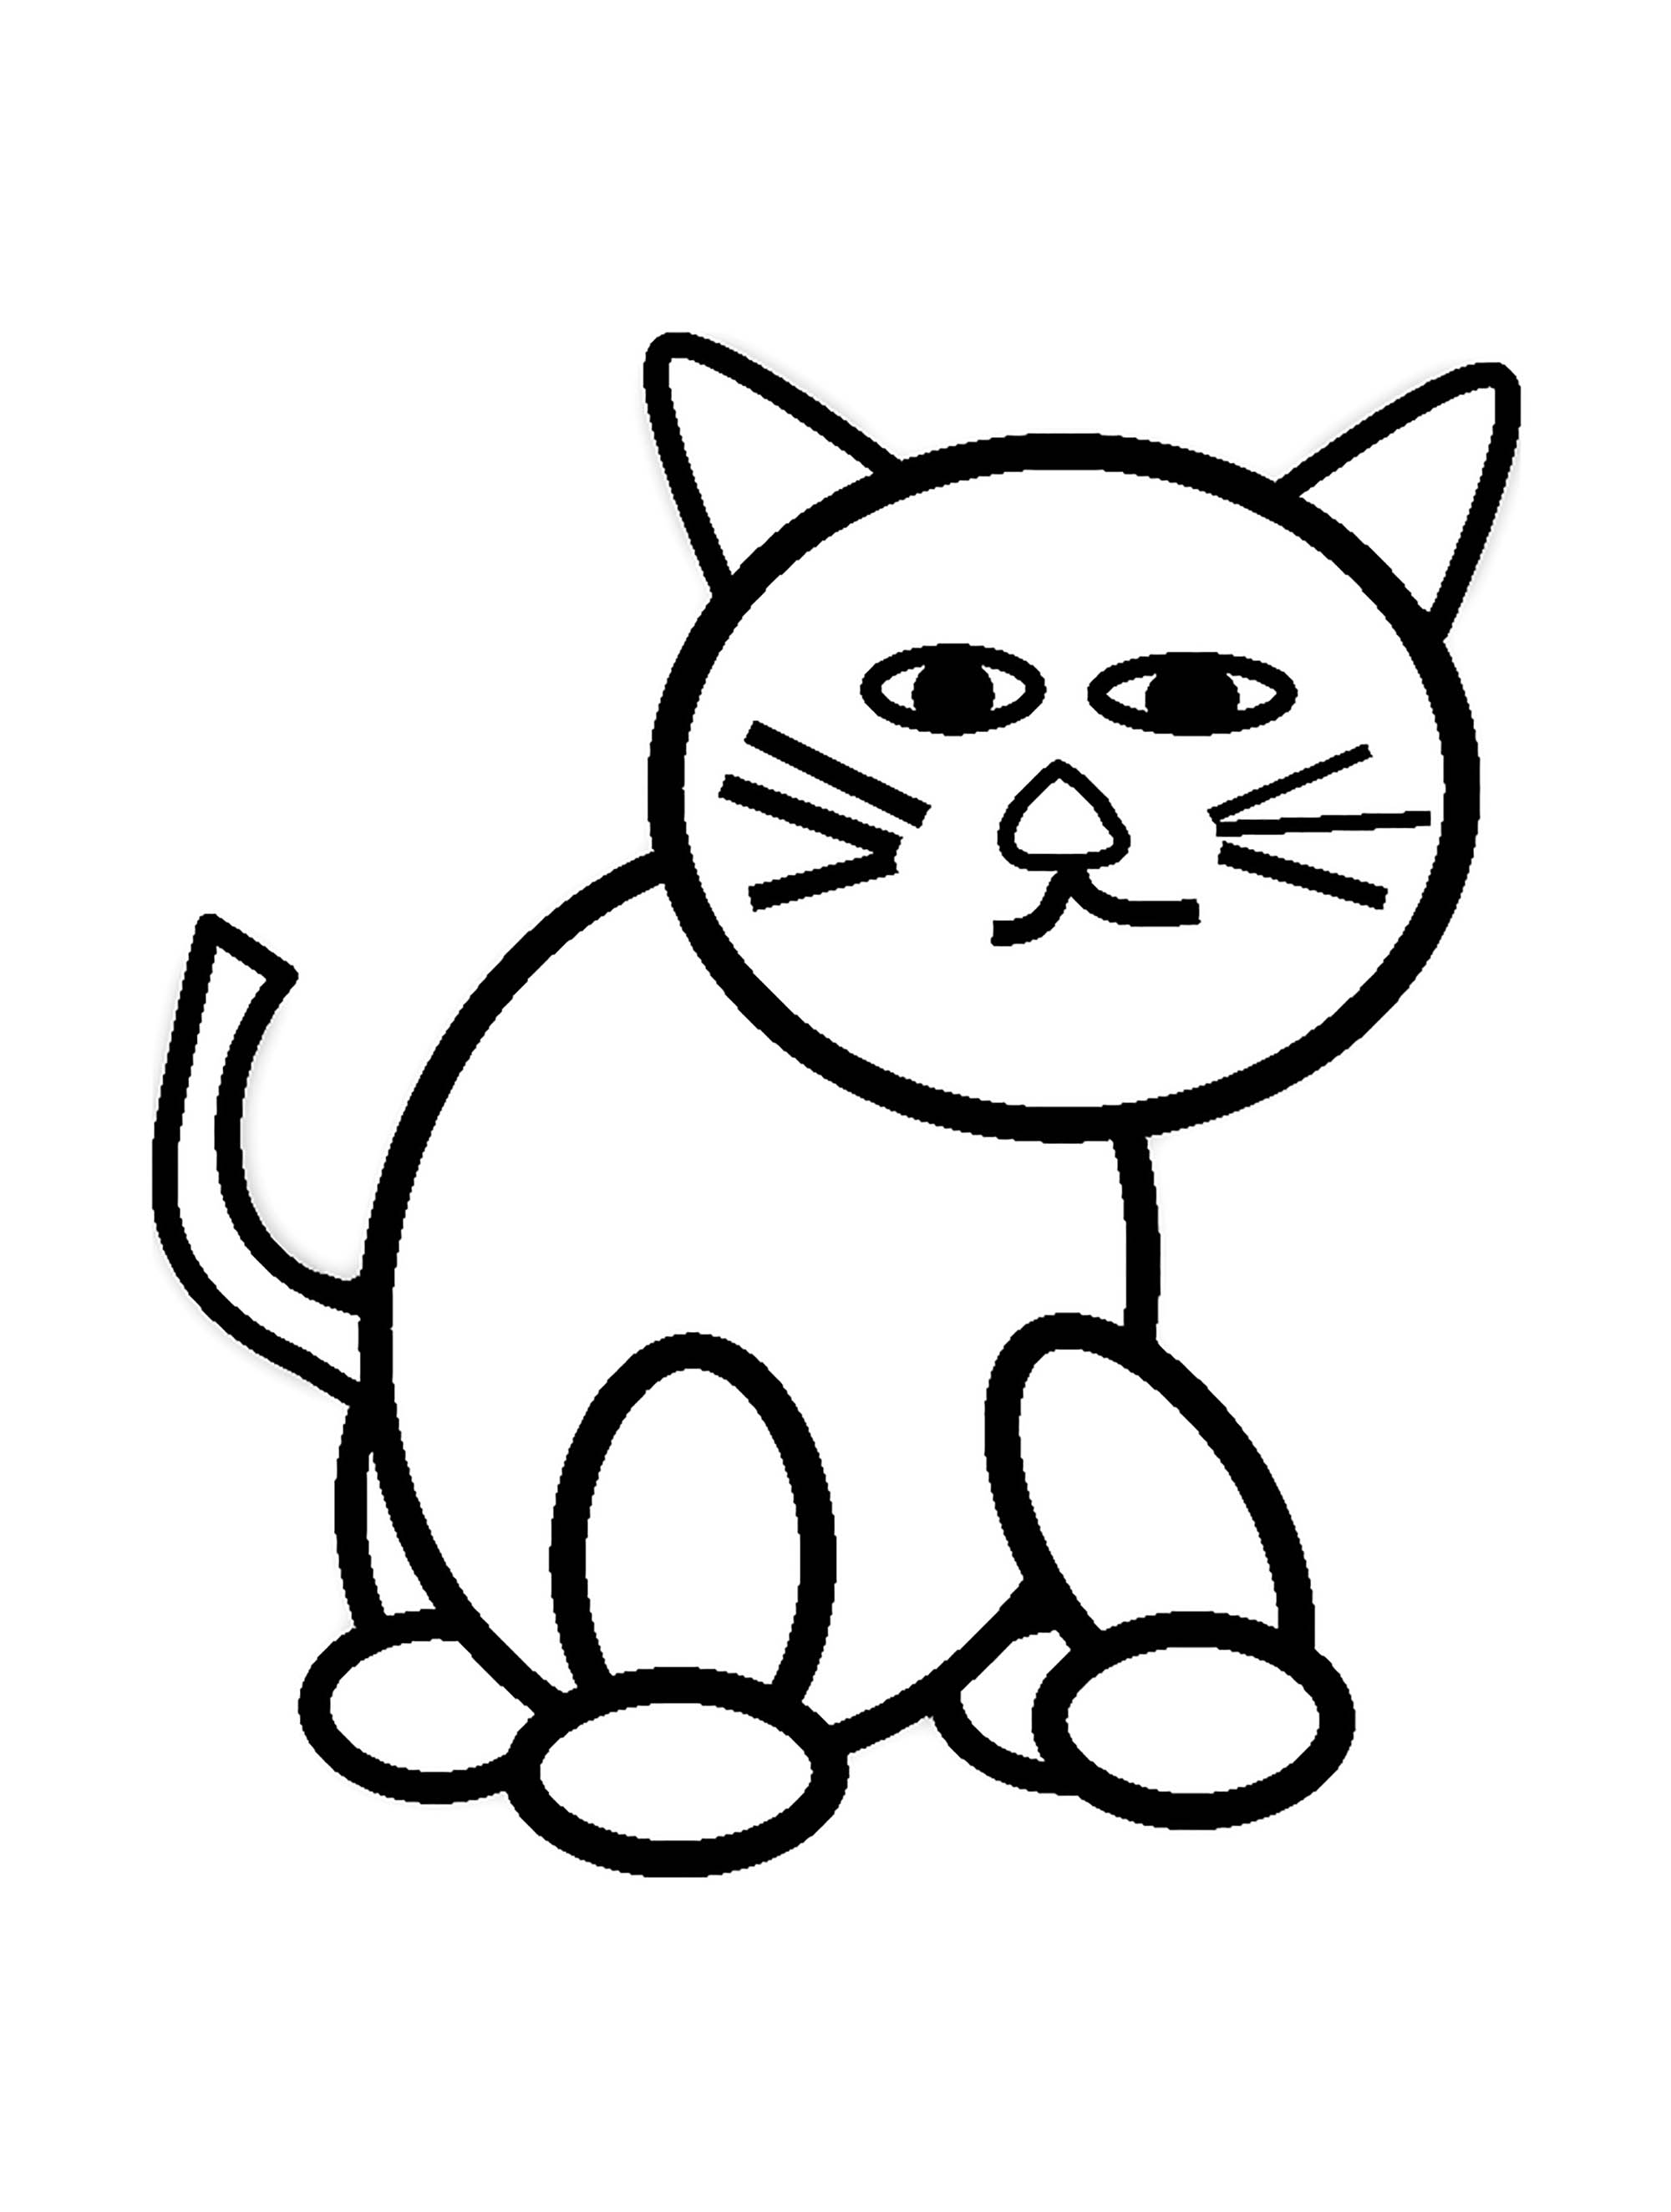 cat to color free printable cat coloring pages for kids cat color to